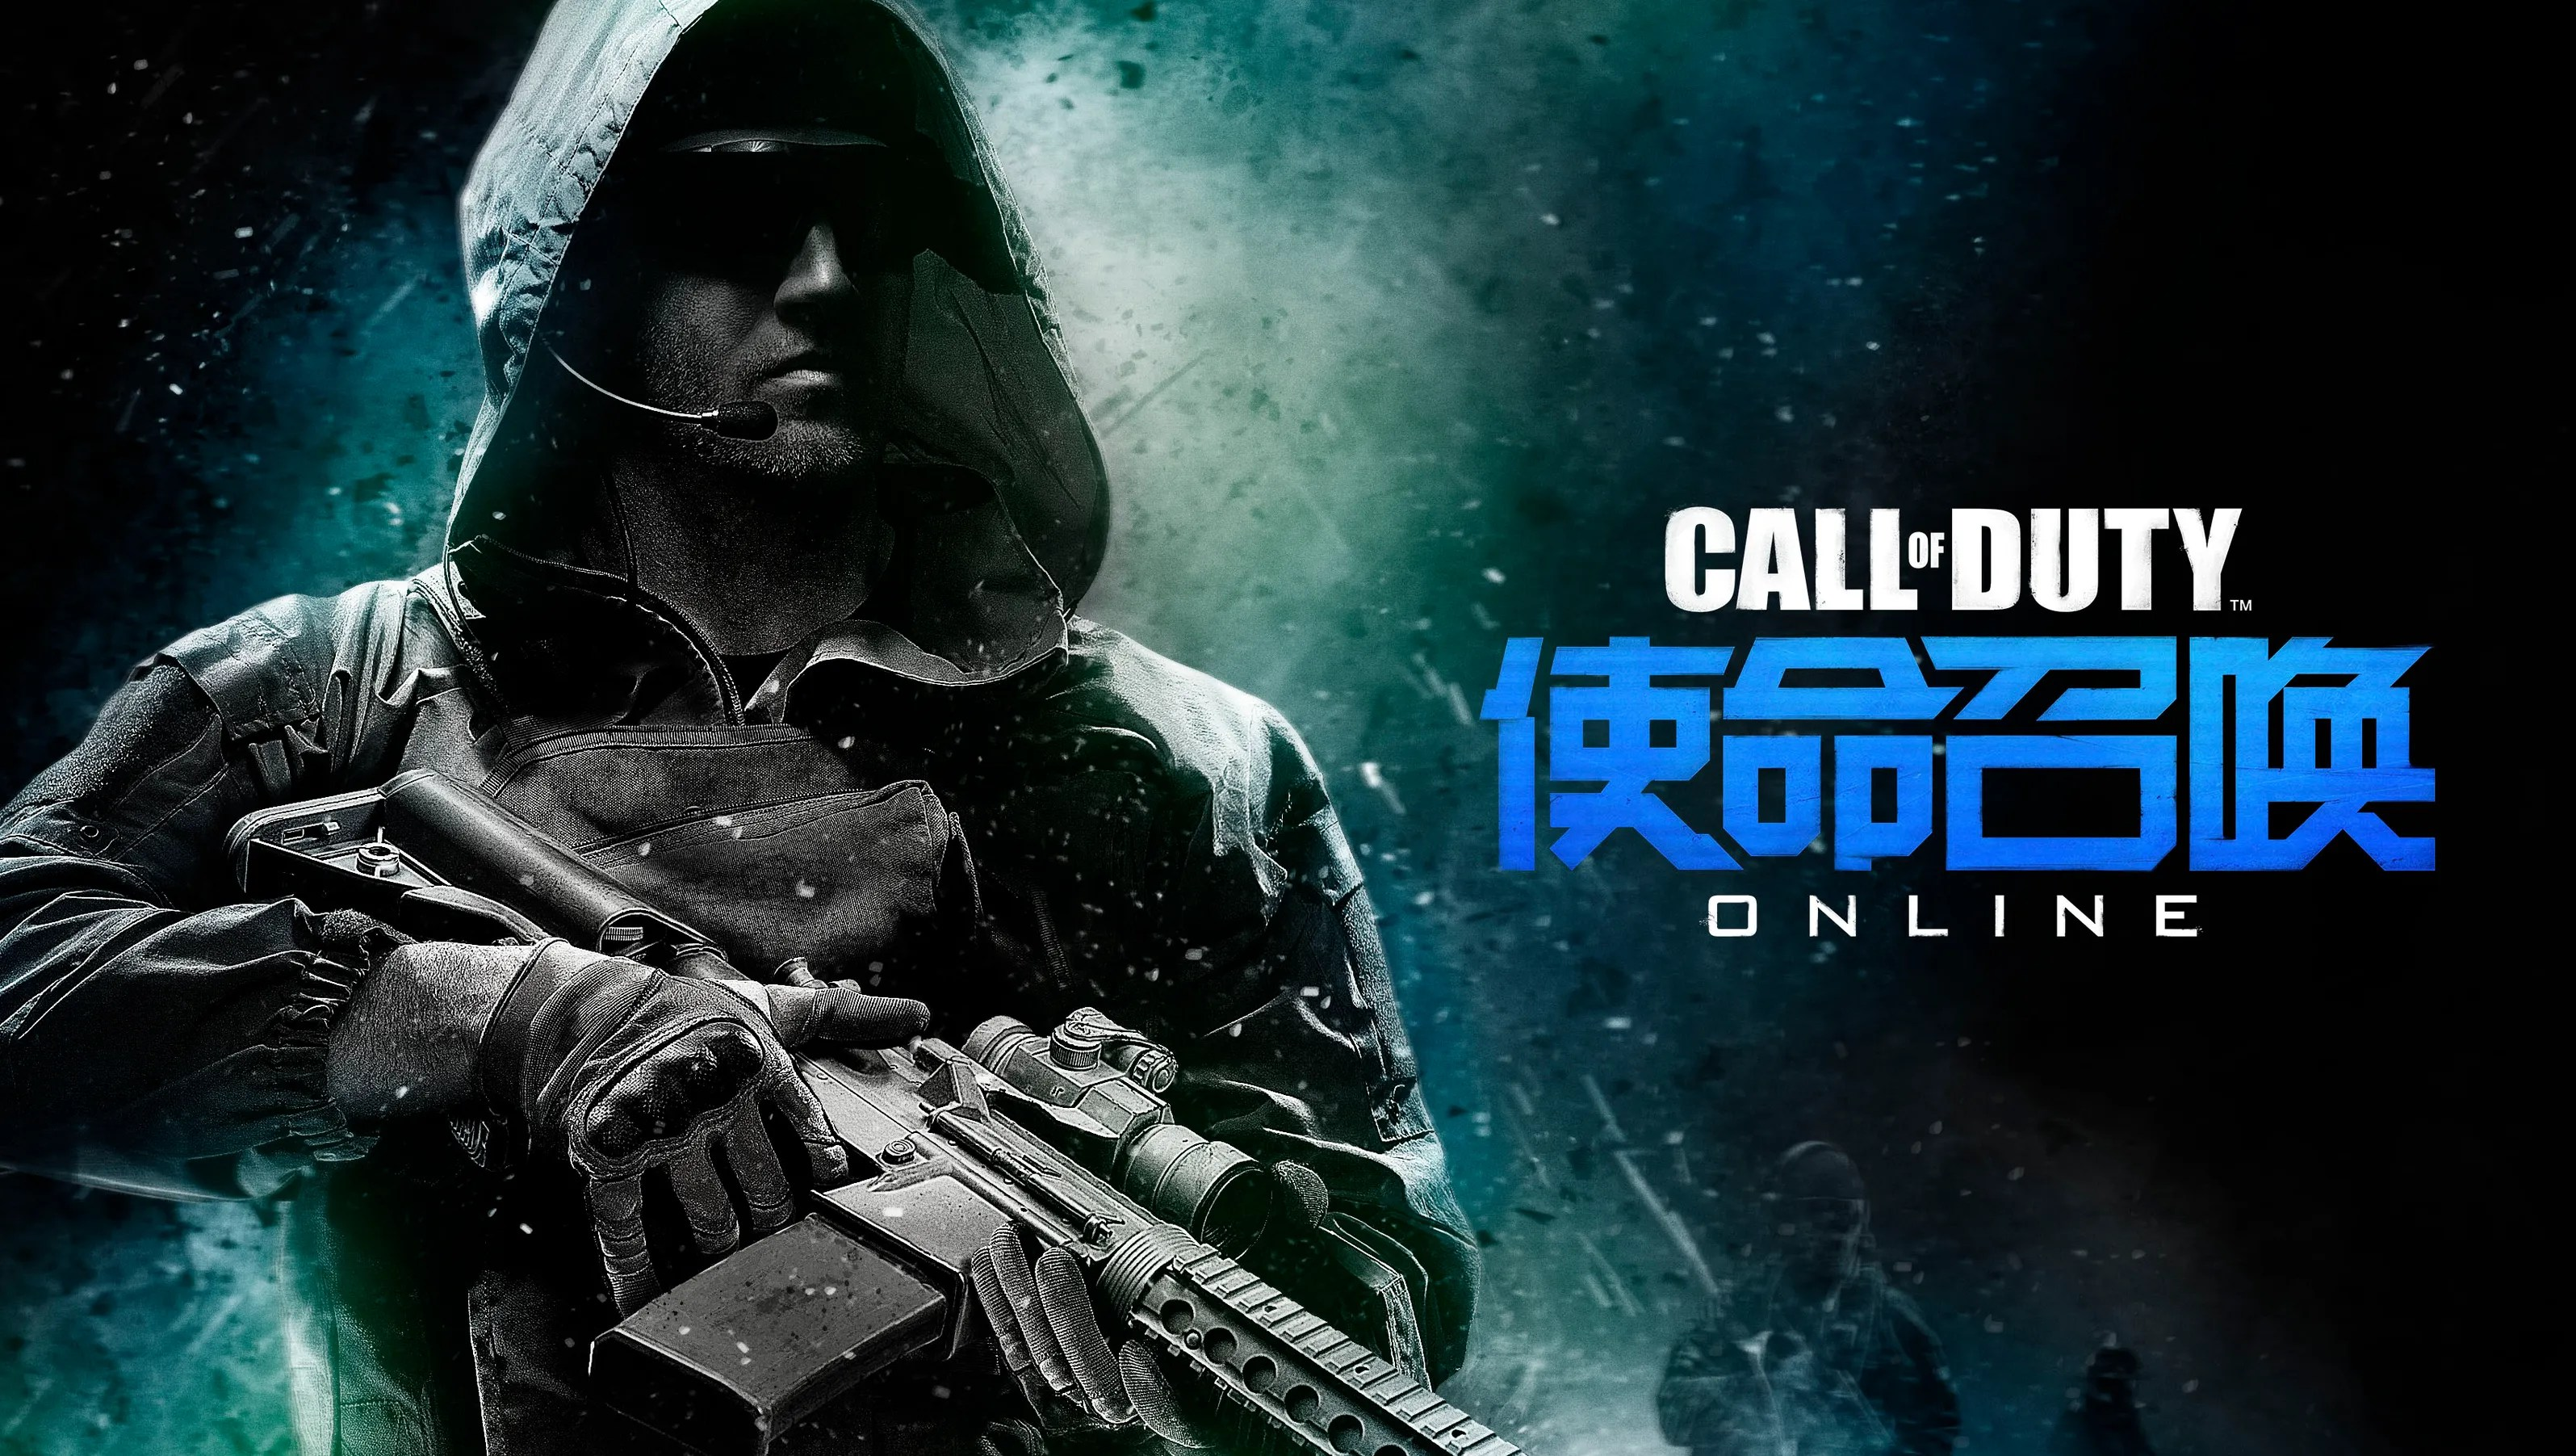 Mw2 Ghost Wallpaper Hd Call Of Duty Online Video Game Goes Live In China